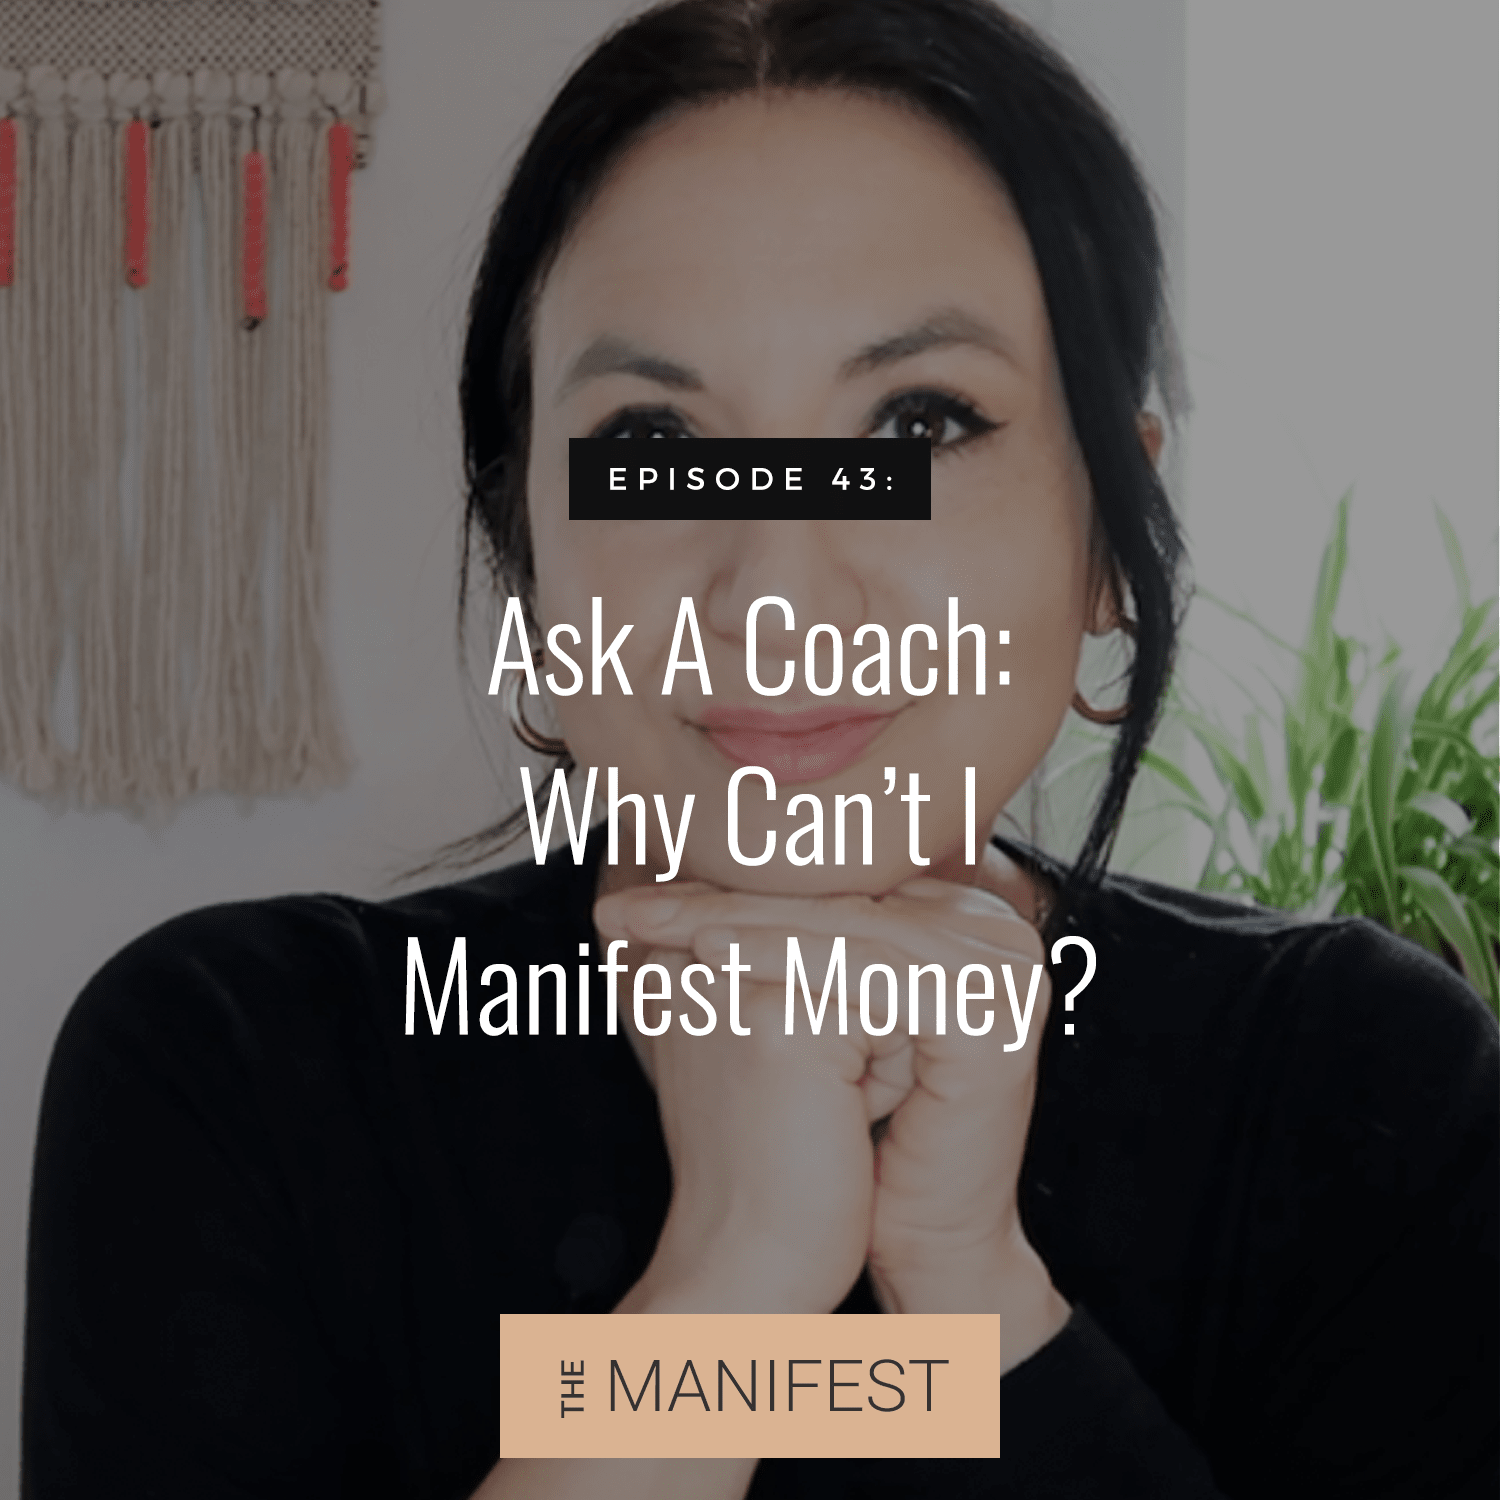 Episode 43 | Ask A Coach: Why Can't I Manifest Money?